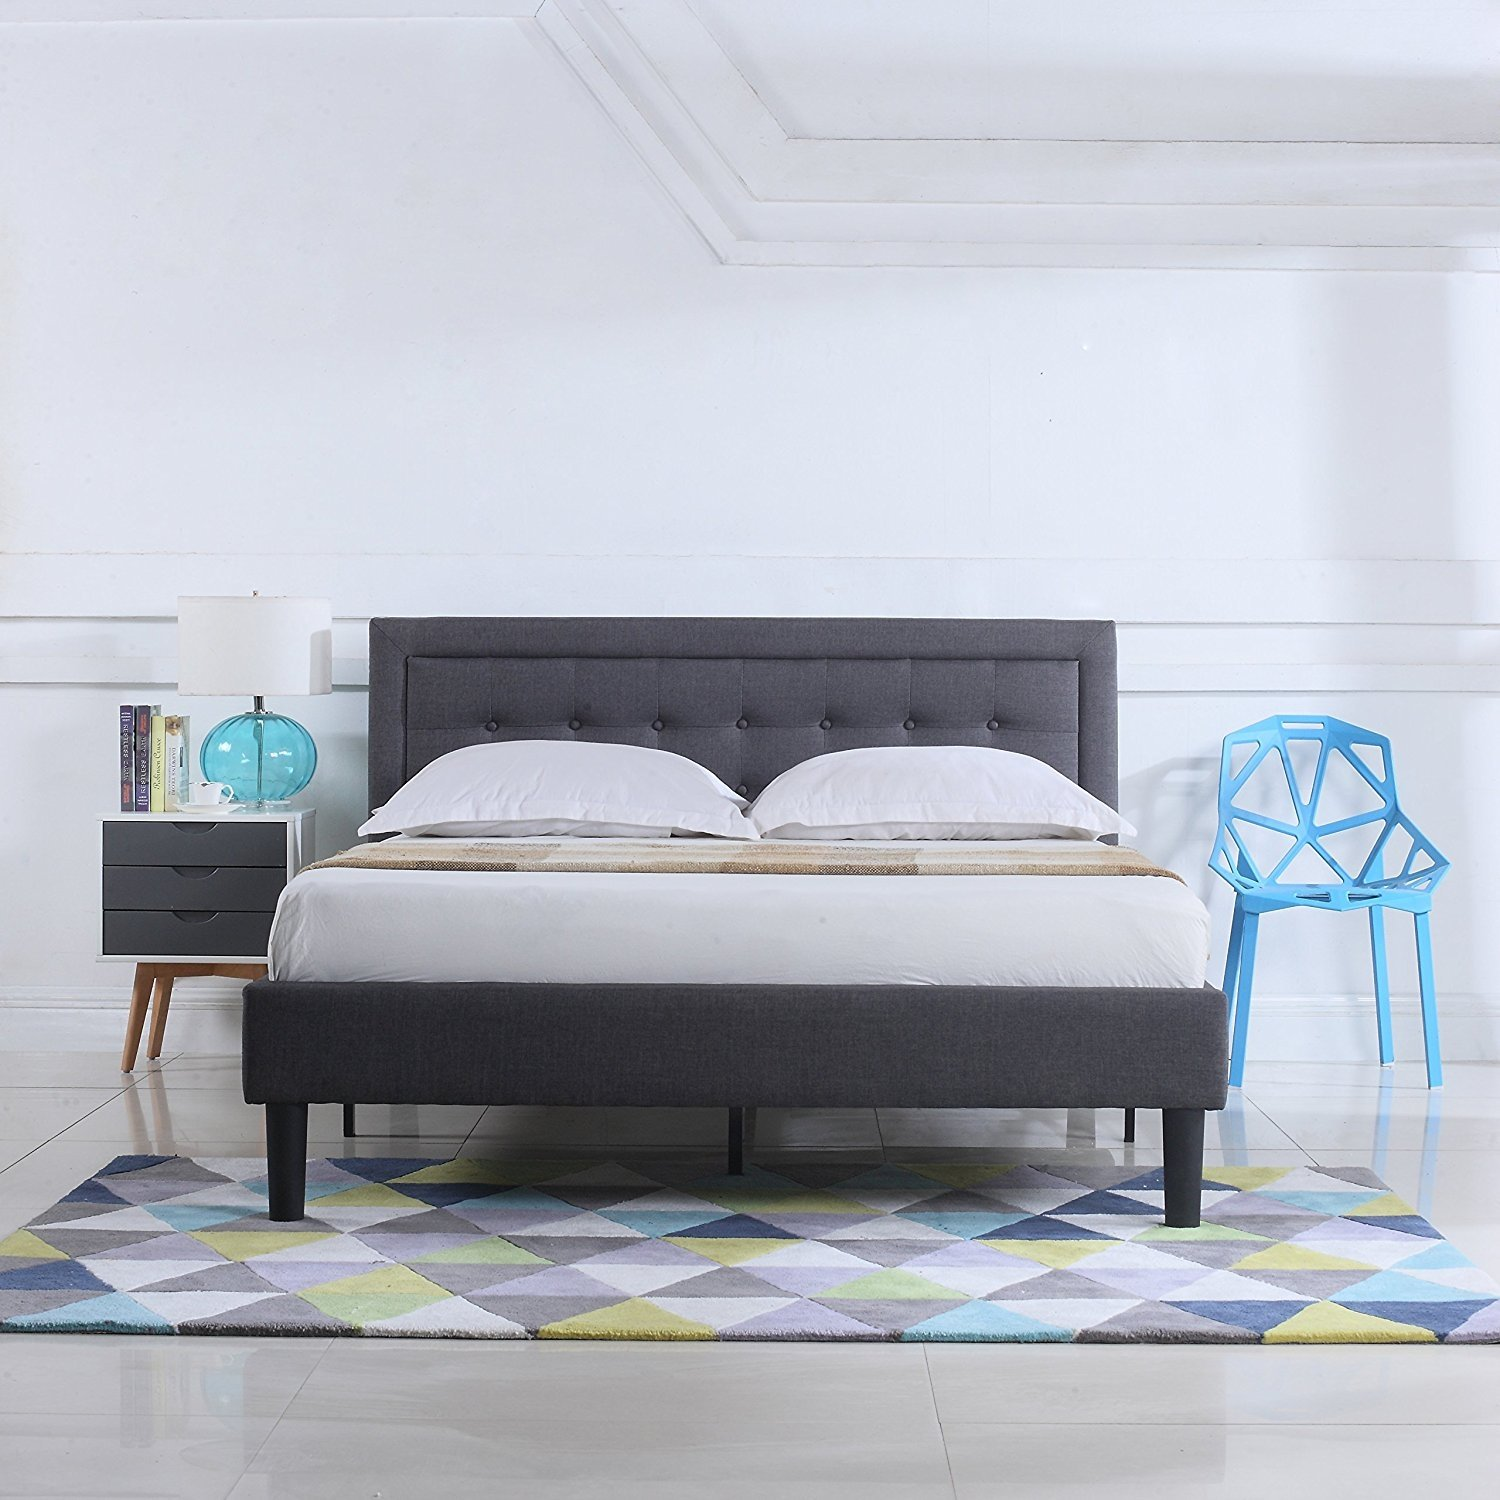 Classic Deluxe Low Profile Platform Bed Frame With Nailhead Trim